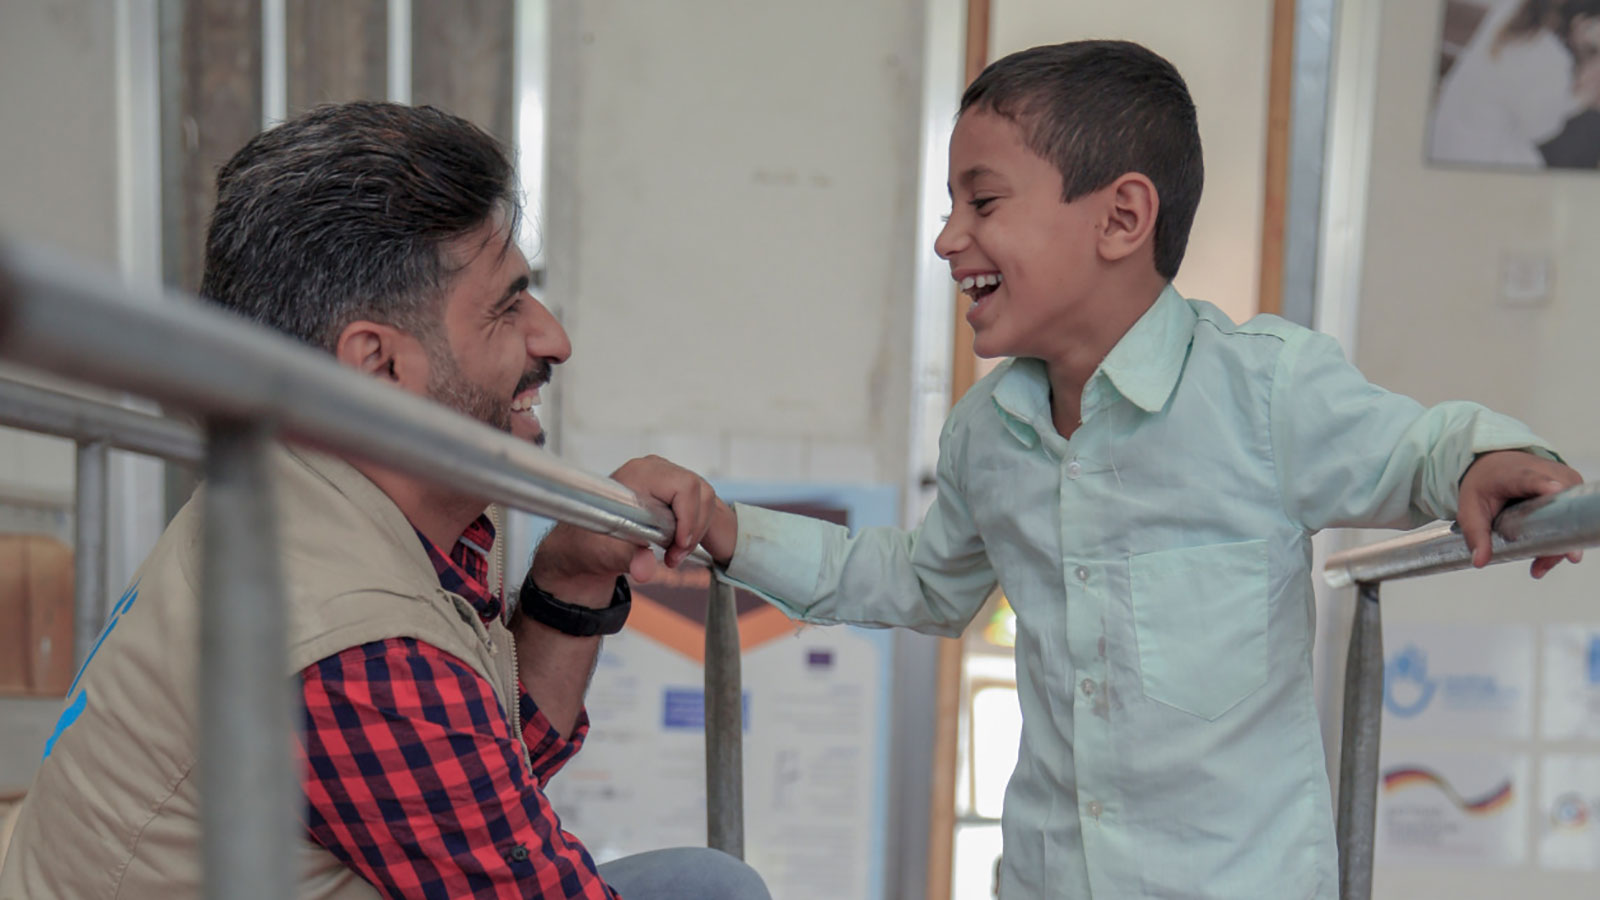 Marwan -7 -lost-his-leg-due-to-a-bombing-in-Yemen.-Here -he-receives-physical-therapy-from-HI's-team-in-Sanaa